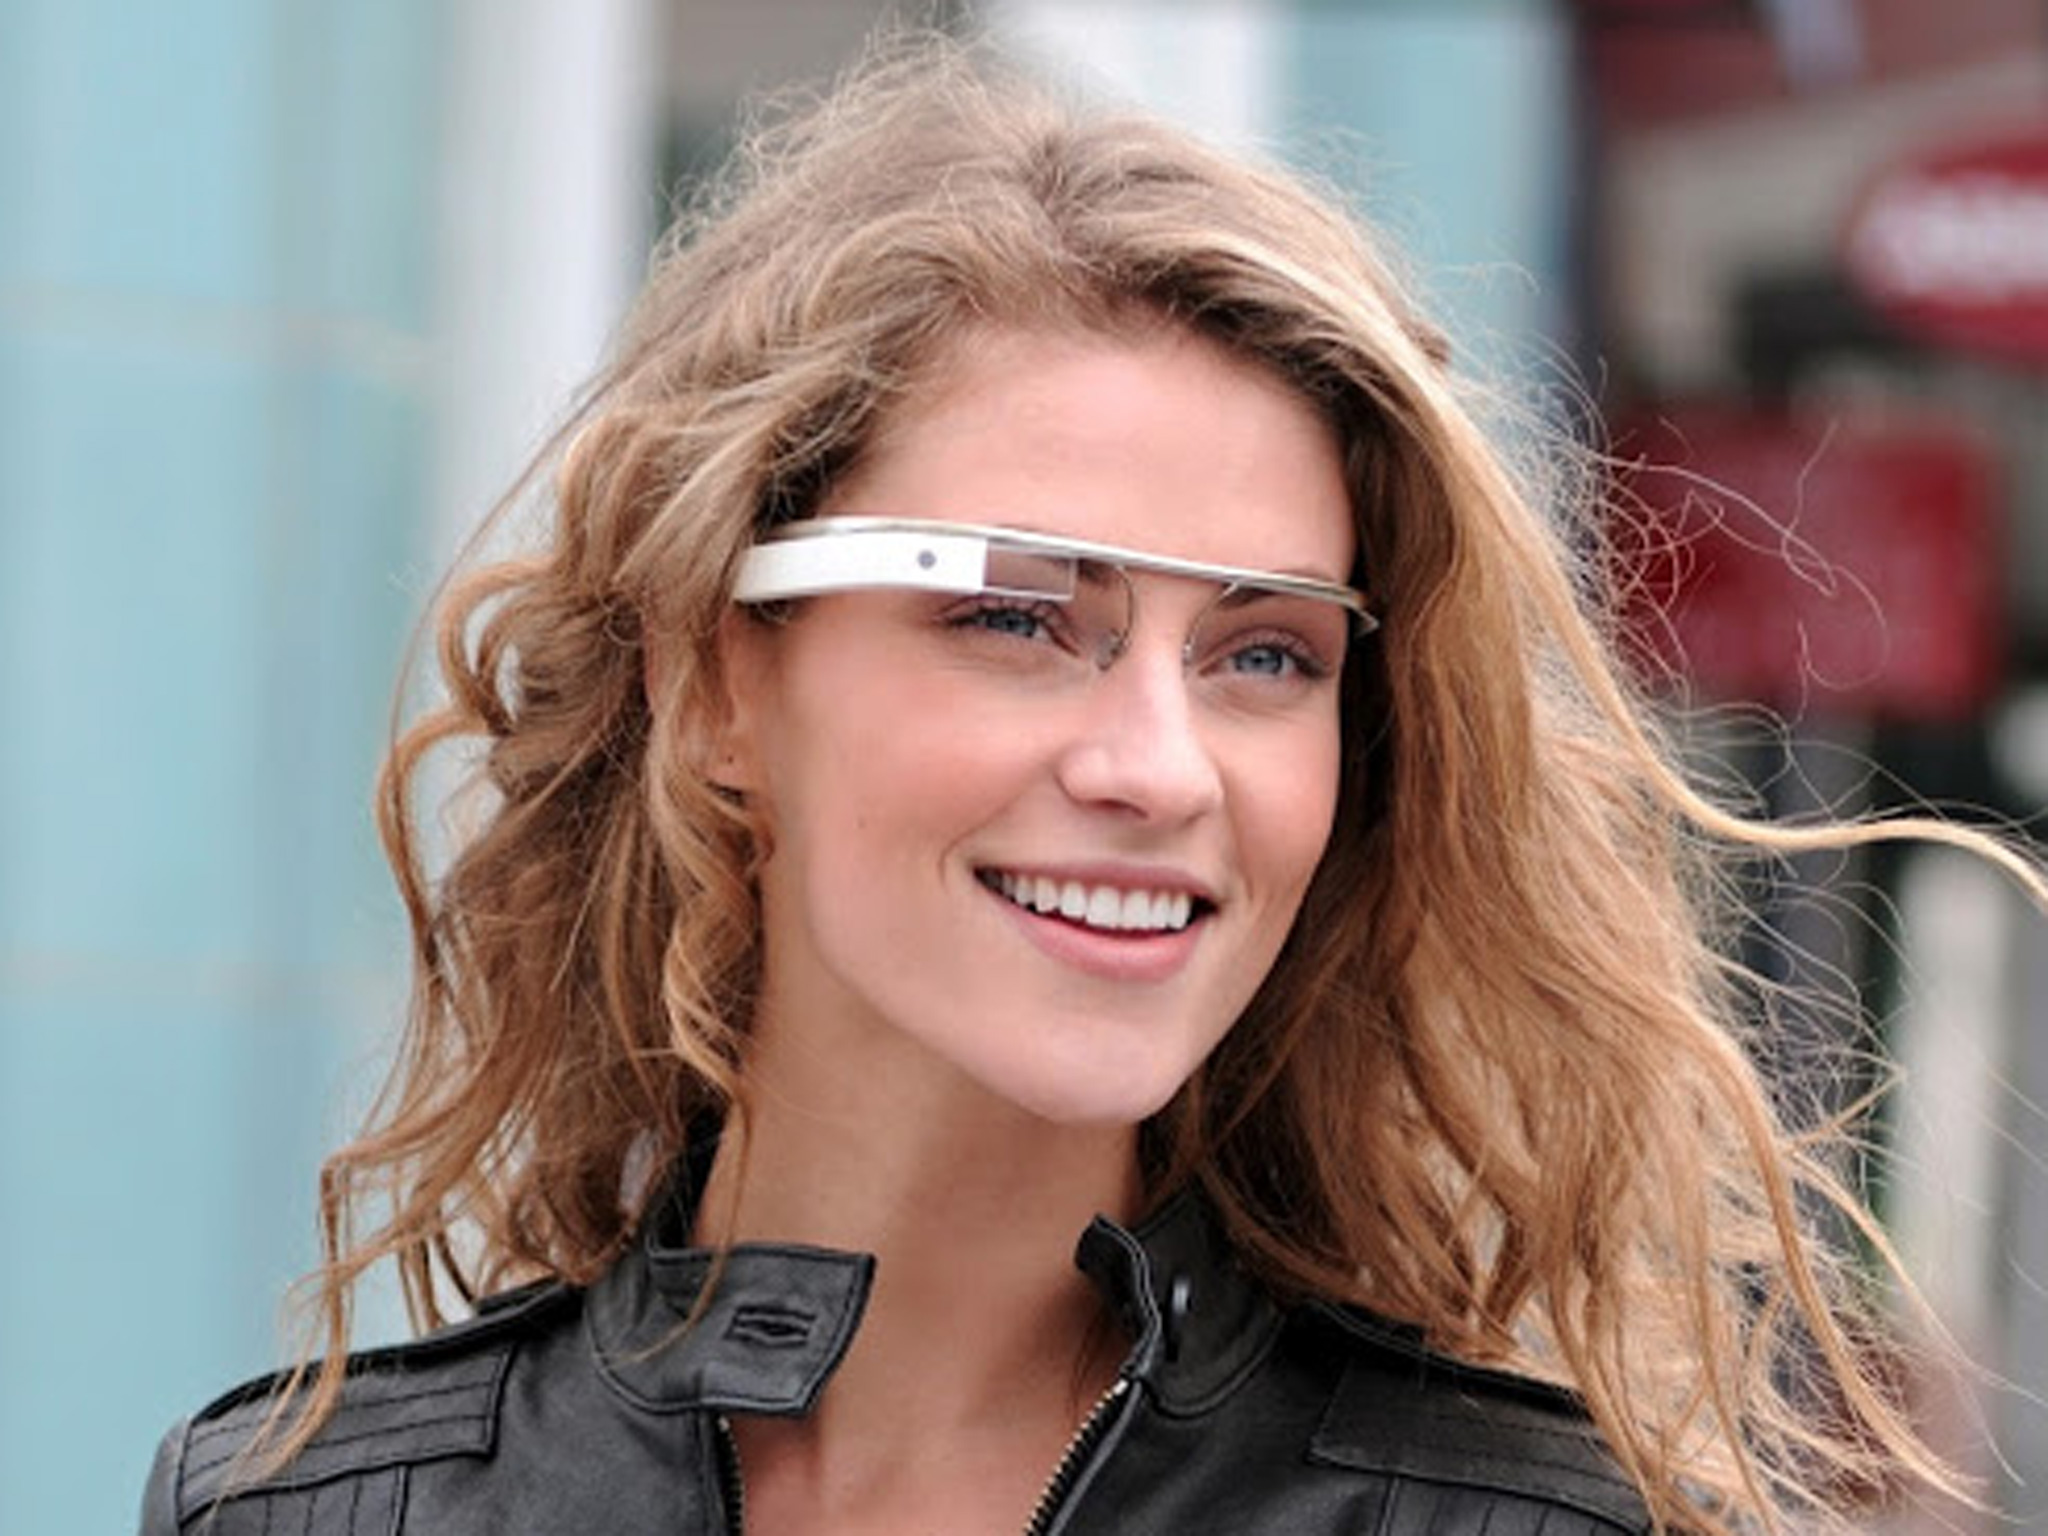 Smartglasses Forecast by Display Size